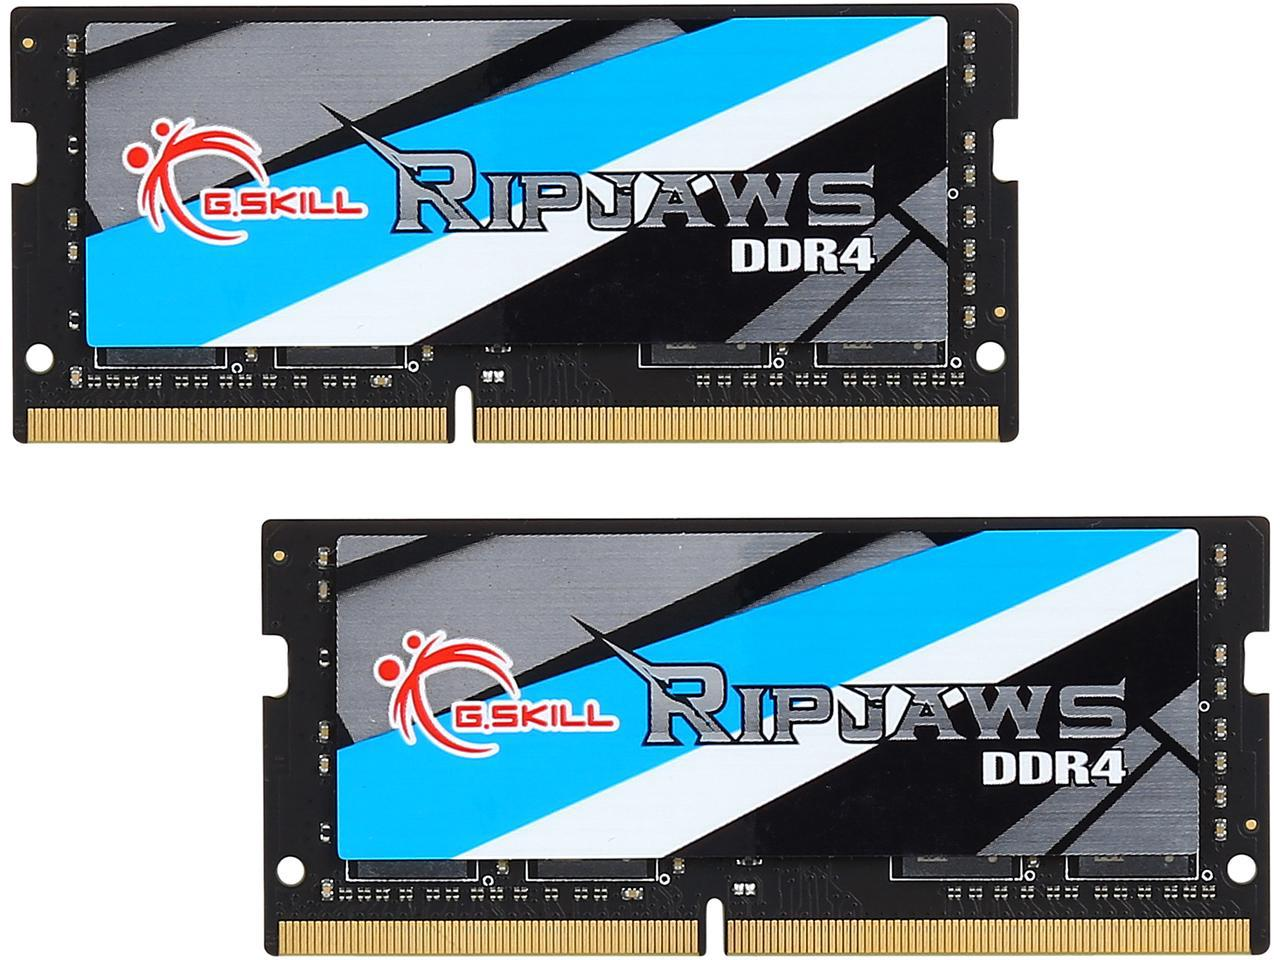 G.SKILL Ripjaws 16GB (2 x 8G) 260-Pin DDR4 SO-DIMM DDR4 2800 (PC4 22400) Laptop Memory Model F4-2800C18D-16GRS